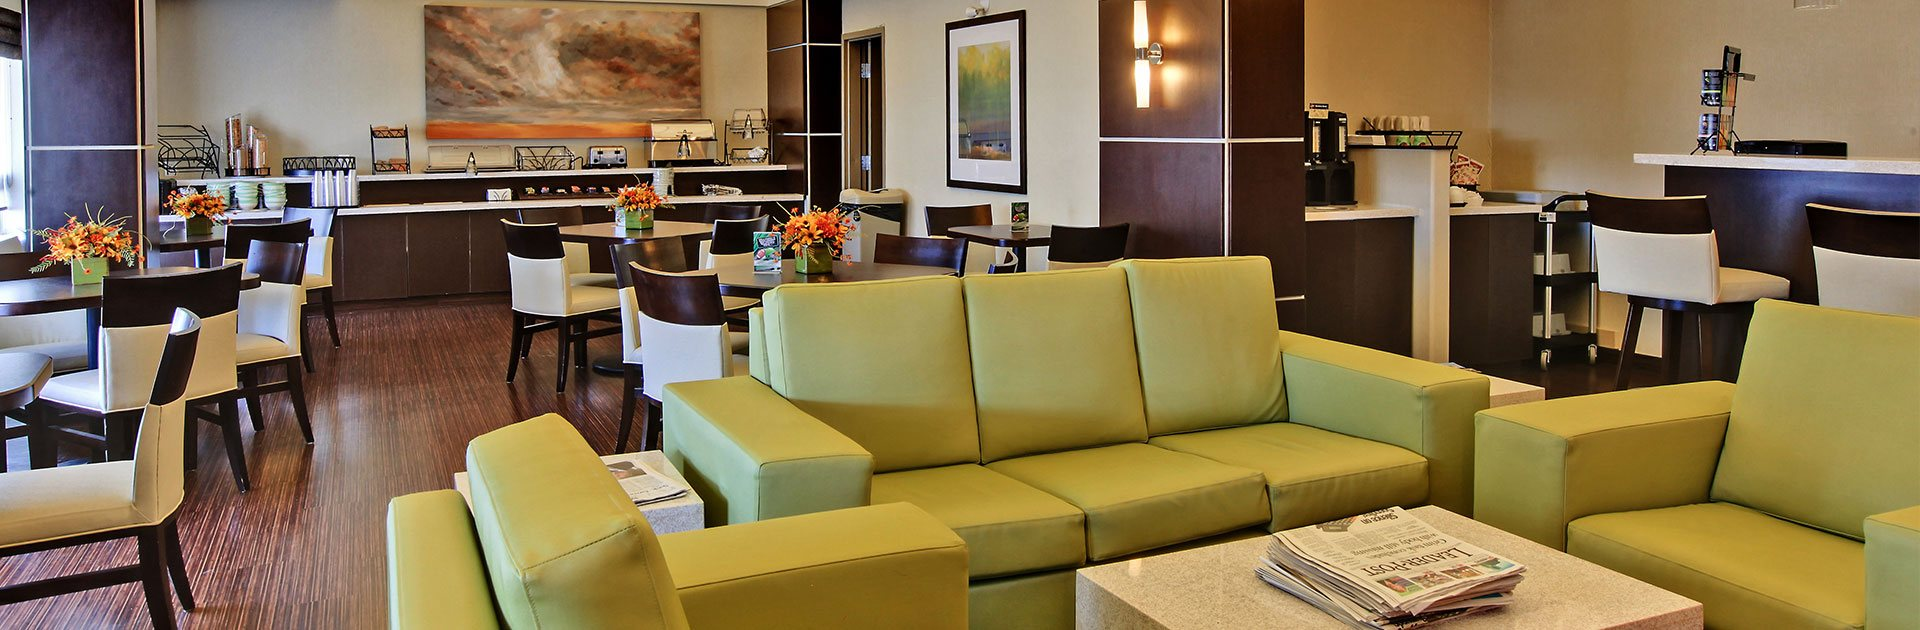 A modern furniture set is featured in the lounge space at d3h Home Inn & Suites Yorkton: a vinyl chartreuse green sofa and armchair set is matched to solid cube shaped coffee and end tables.  A coffee bar is set in a secluded corner next to the breakfast area, while a two-tiered elongated counter, bearing stainless steel appliances and eating ware, is lined up against the back wall of the dining area.  A series of square tables and white upholstered dining chairs are placed throughout the space.